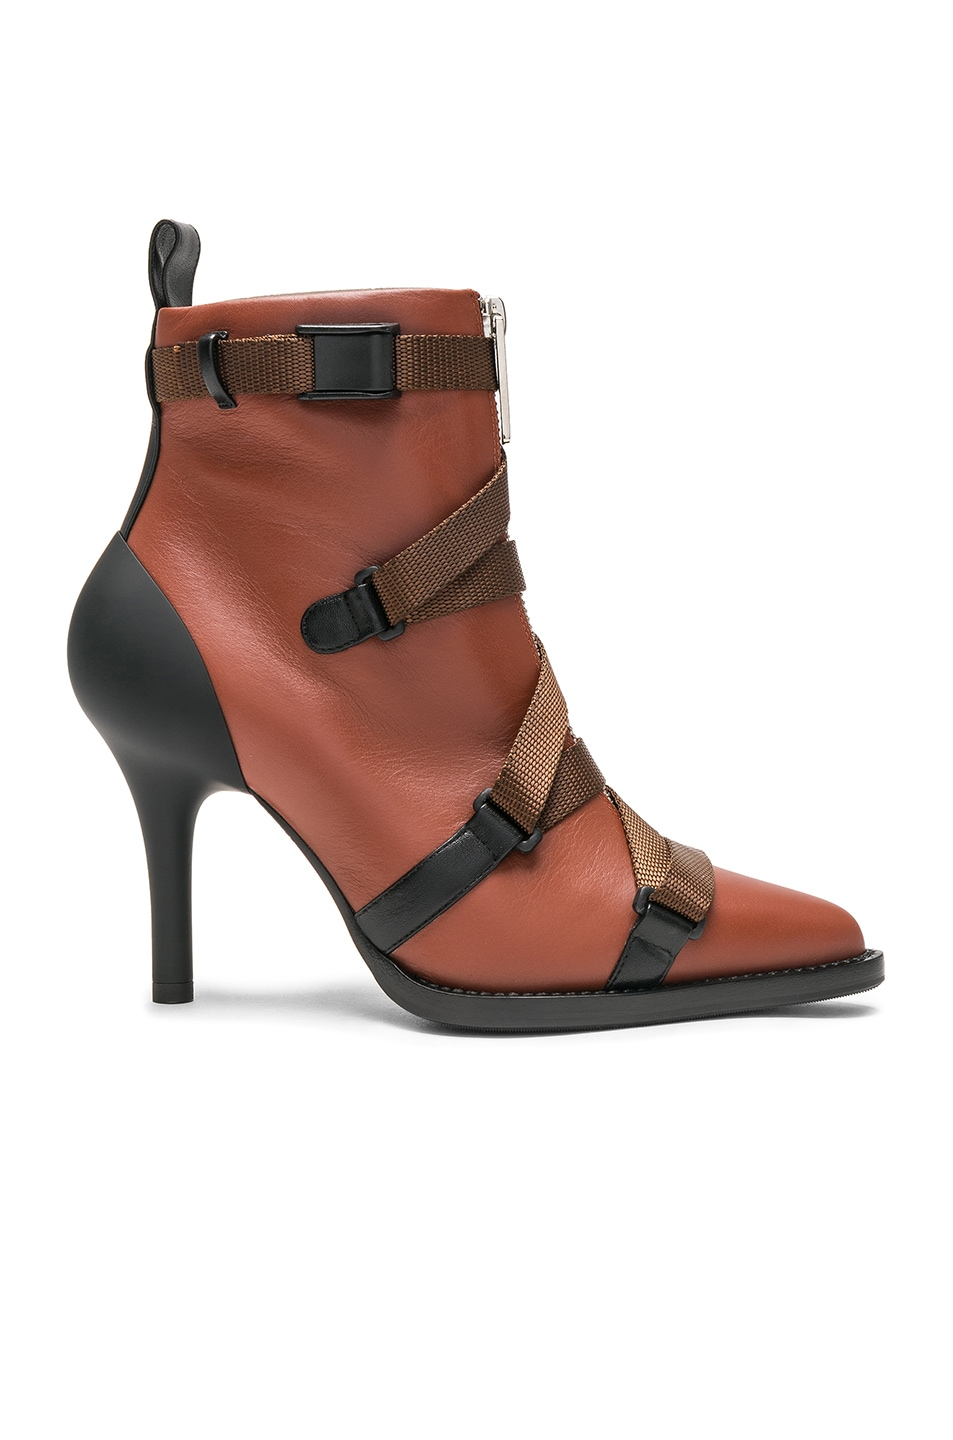 Image 1 of Chloe Tracy Leather Cross Strap Ankle Boots in Sepia Brown